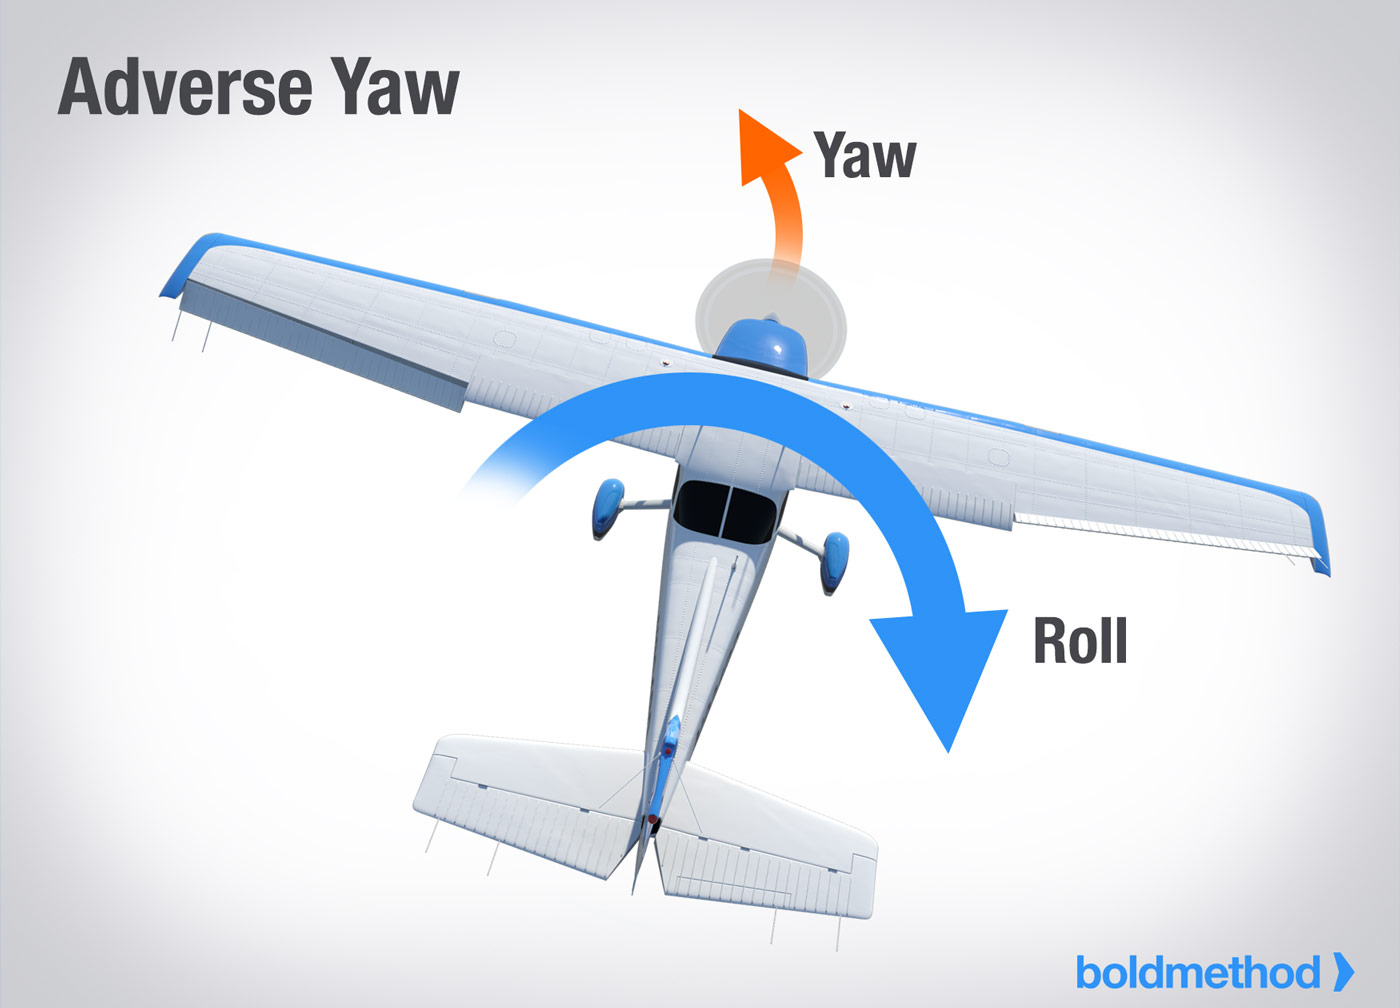 how adverse yaw affects your plane boldmethod